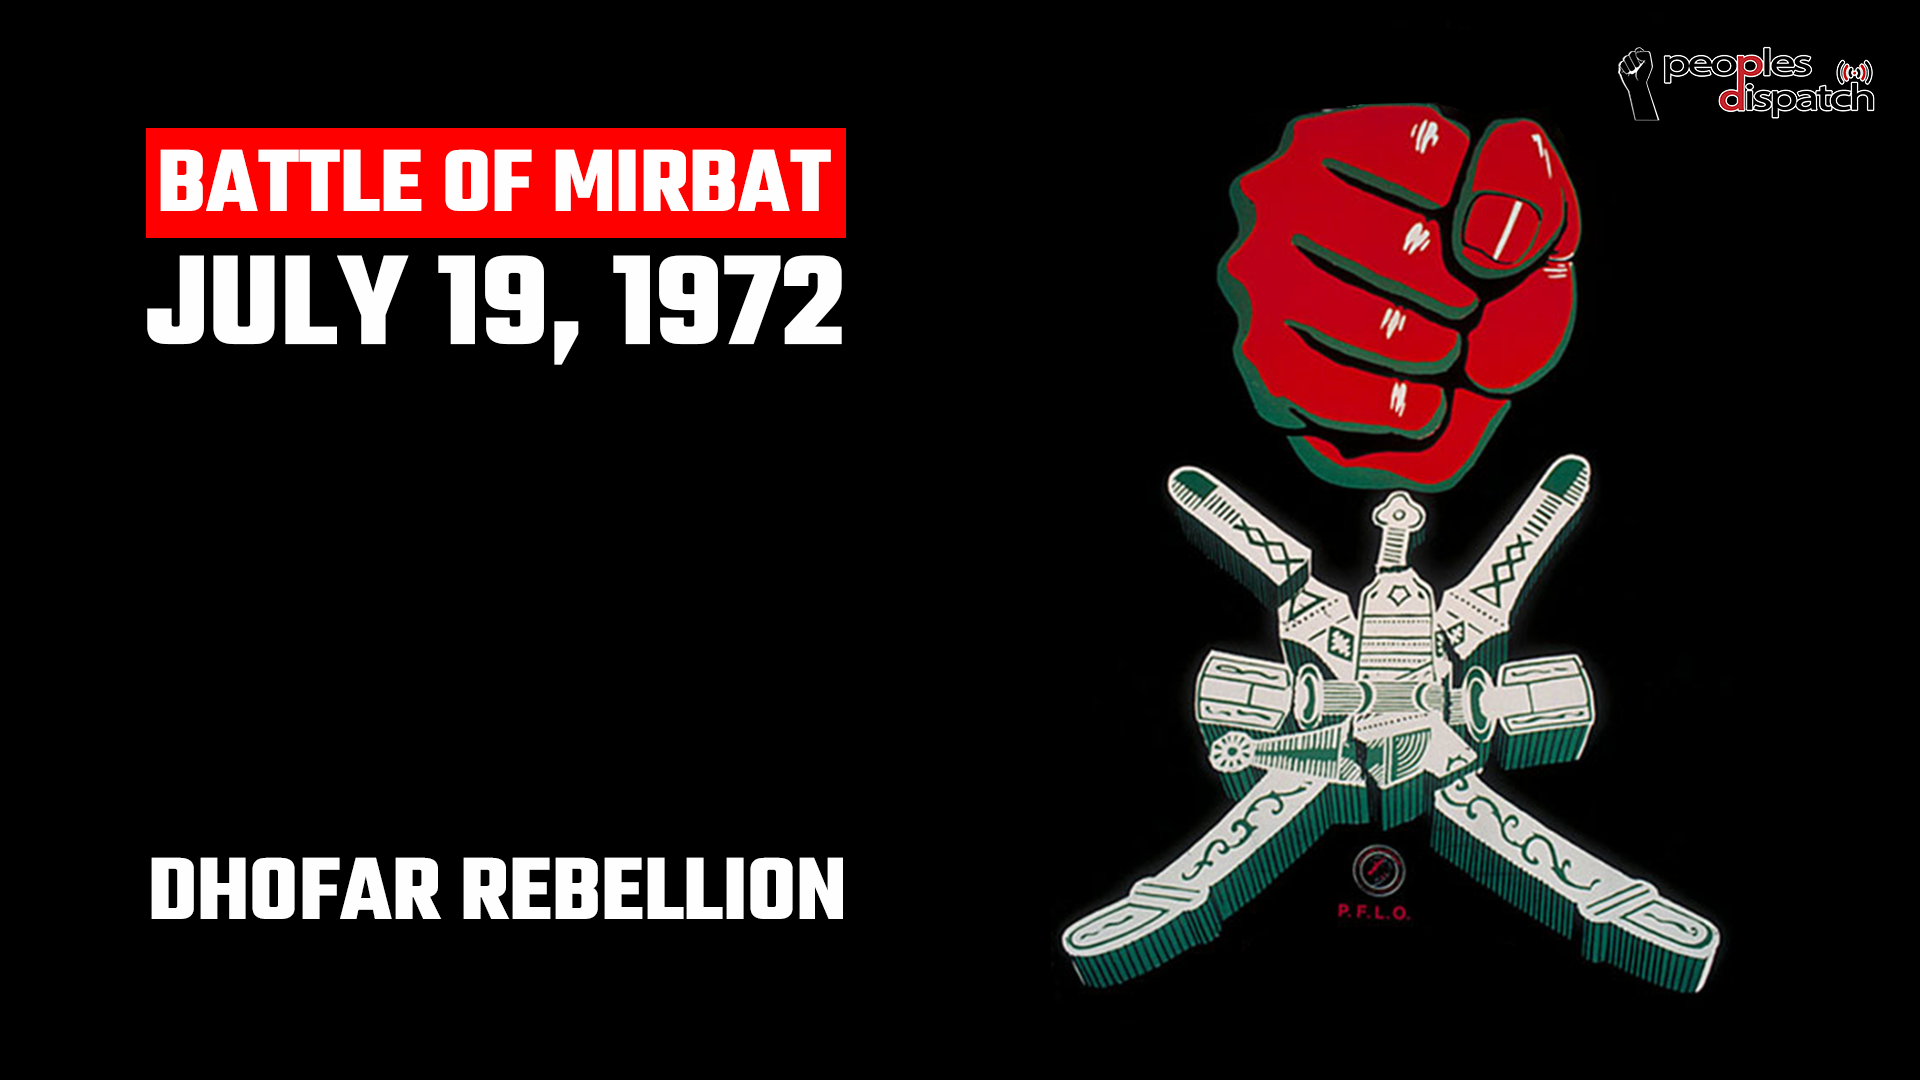 Battle of Mirbat 1972